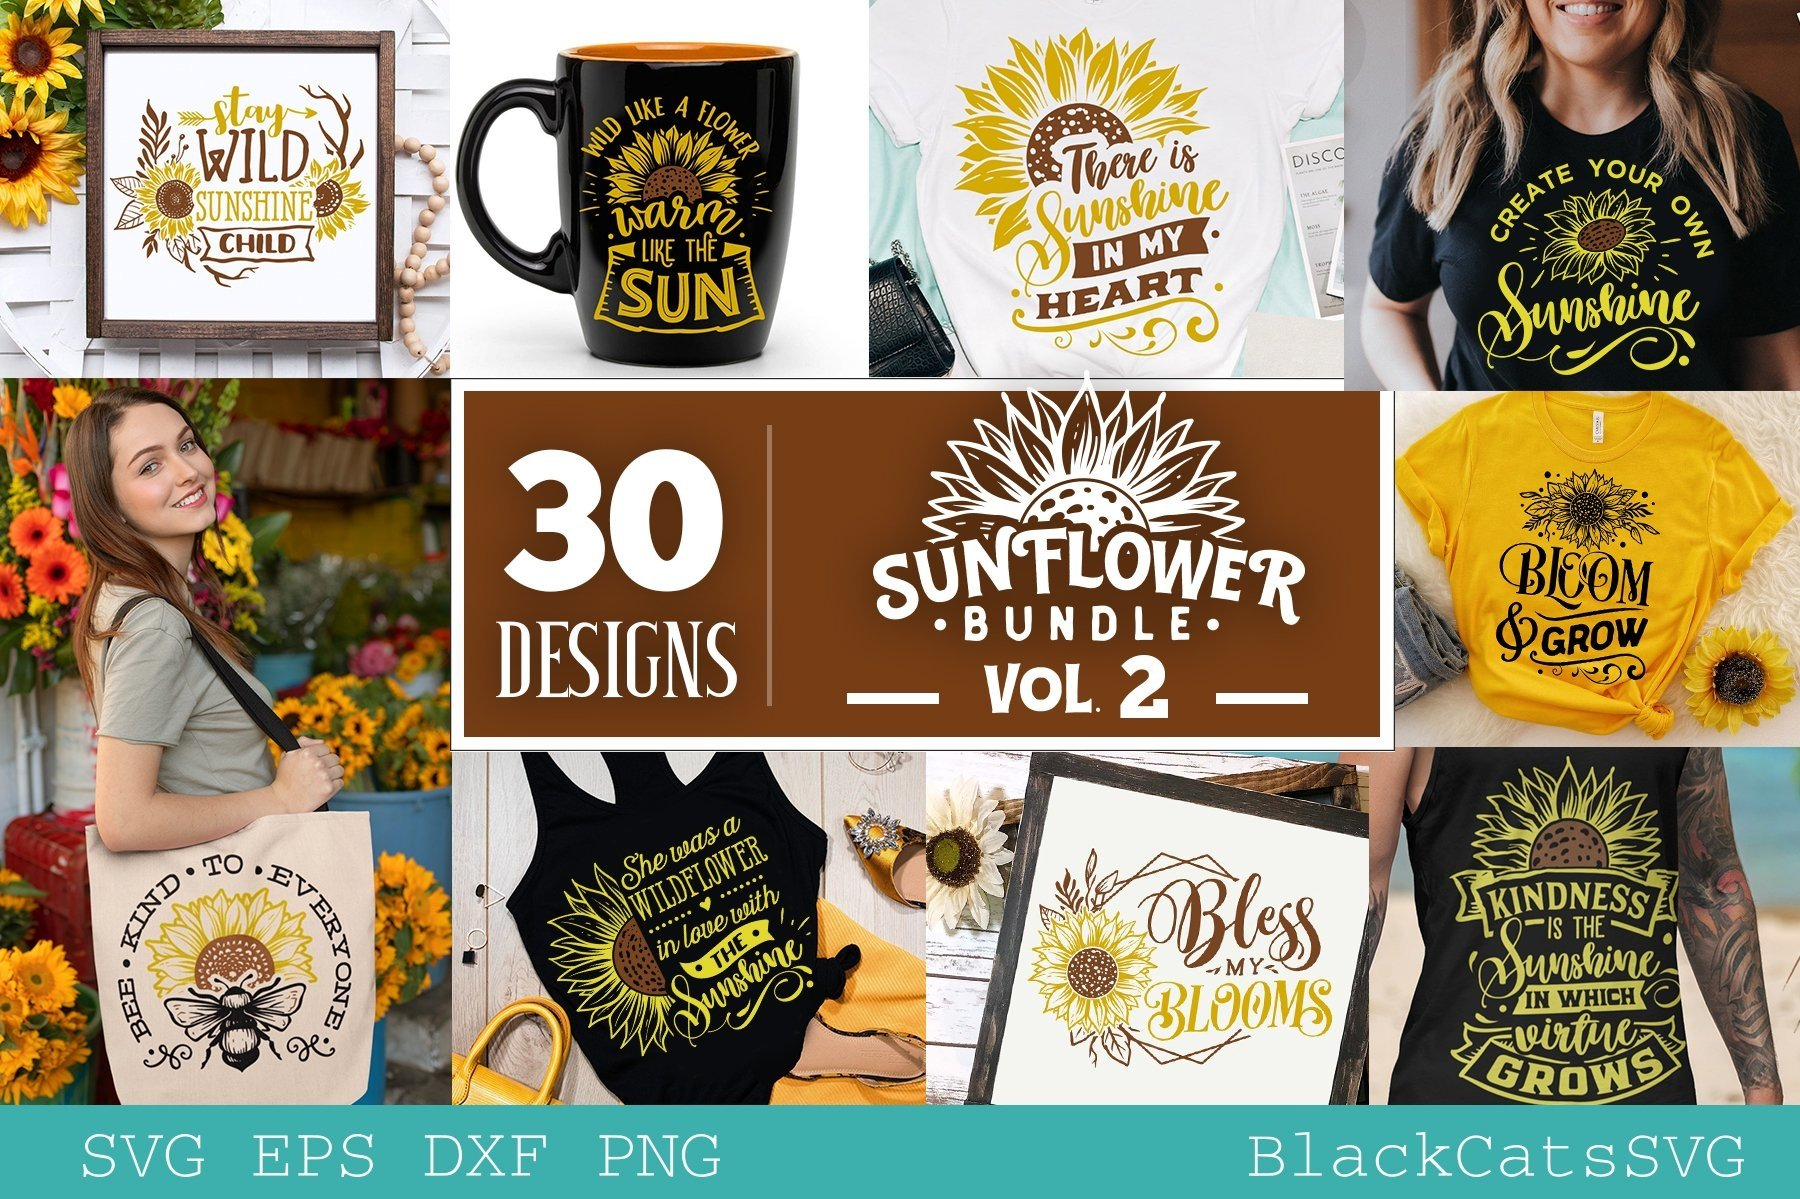 Mega Bundle 400 SVG designs vol 3 example image 2